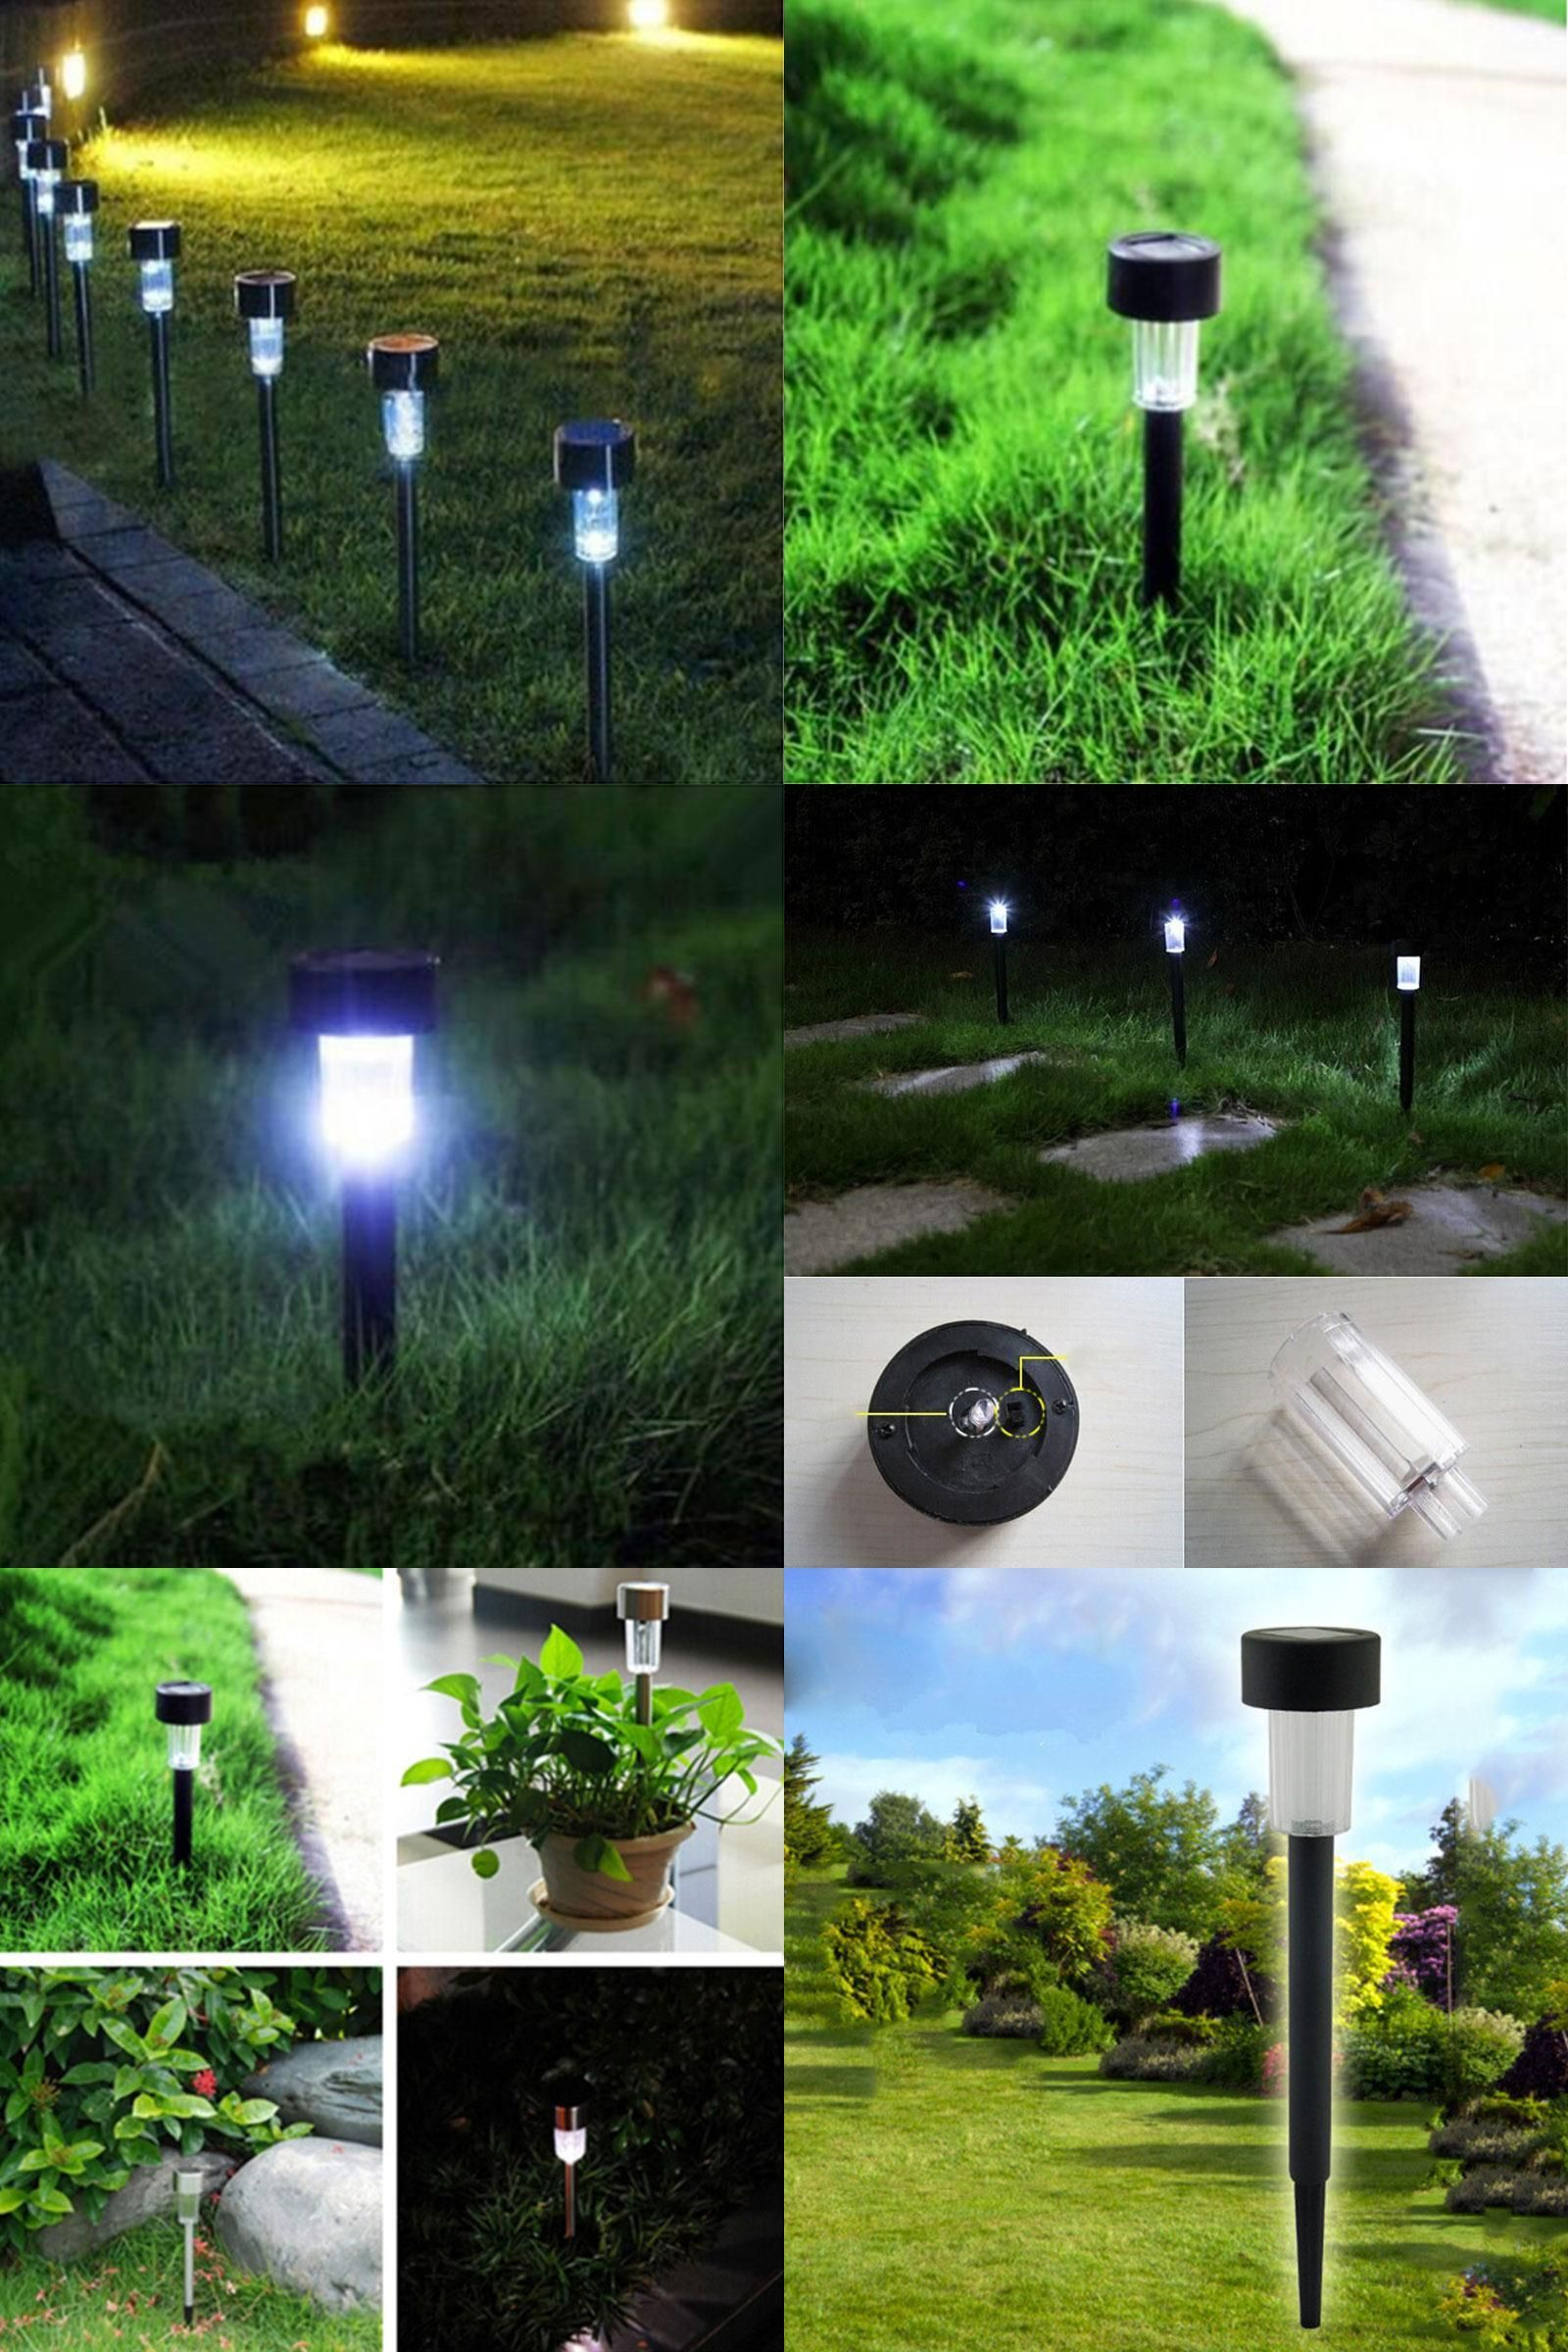 Visit To Buy Hot Sale Waterproof 10 X White Led Outdoor Garden Light Solar Powered Landscape Yard Lawn Outdoor Garden Lighting Outdoor Garden Garden Lighting